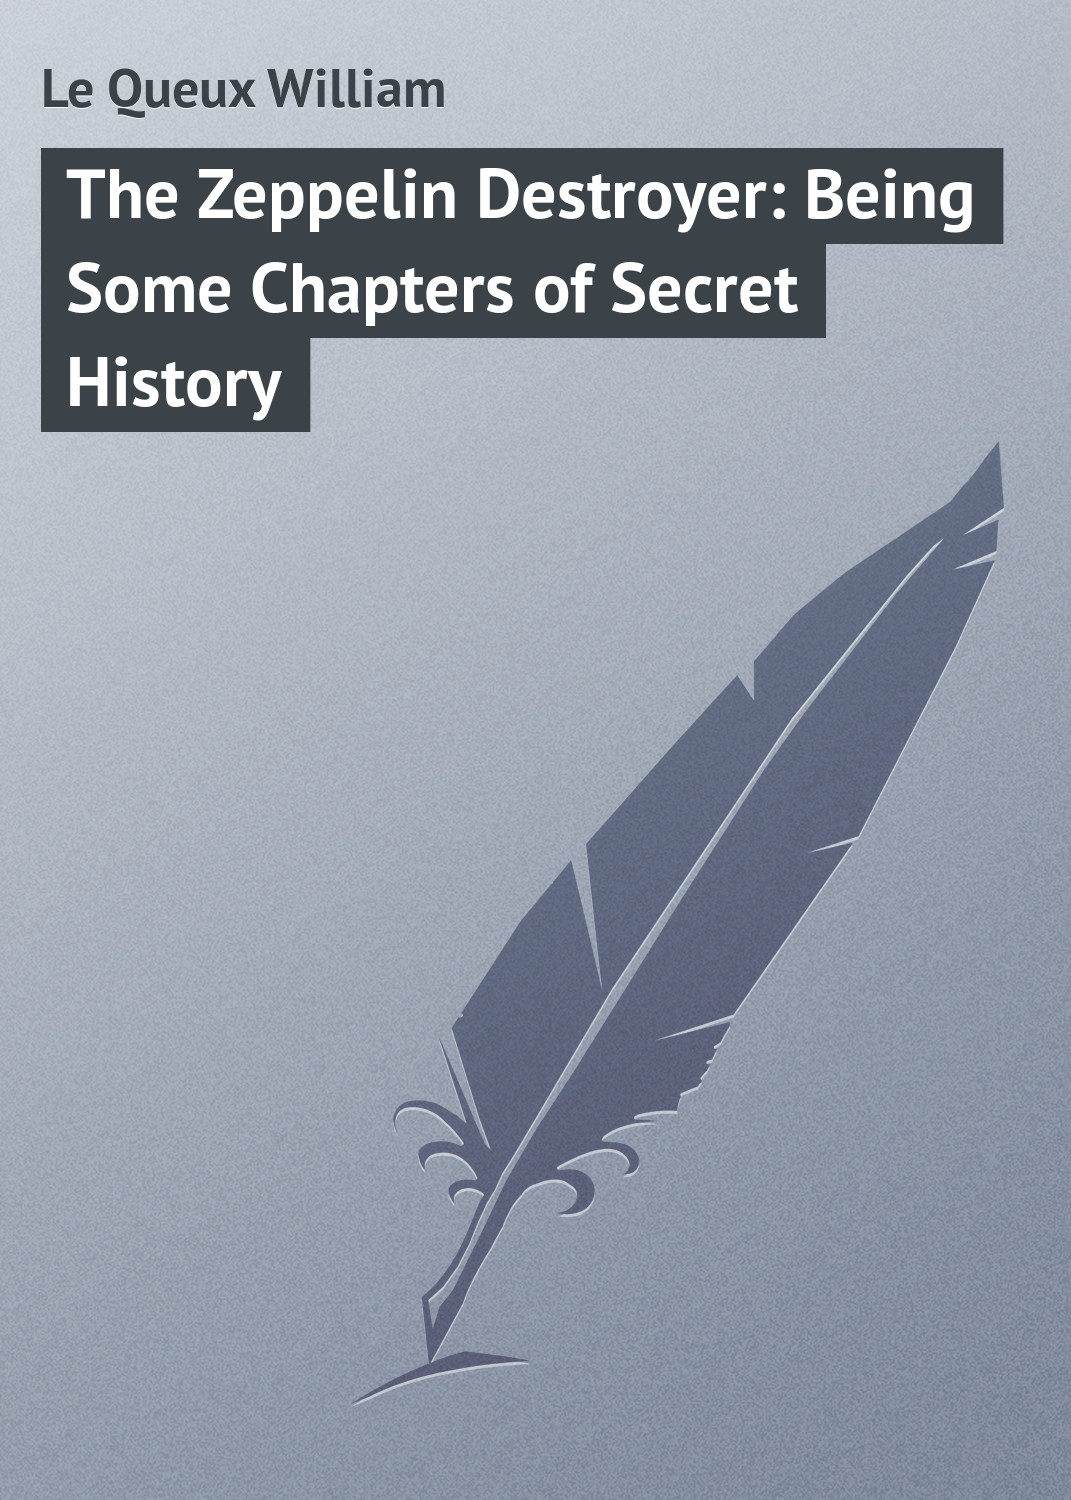 цена на Le Queux William The Zeppelin Destroyer: Being Some Chapters of Secret History